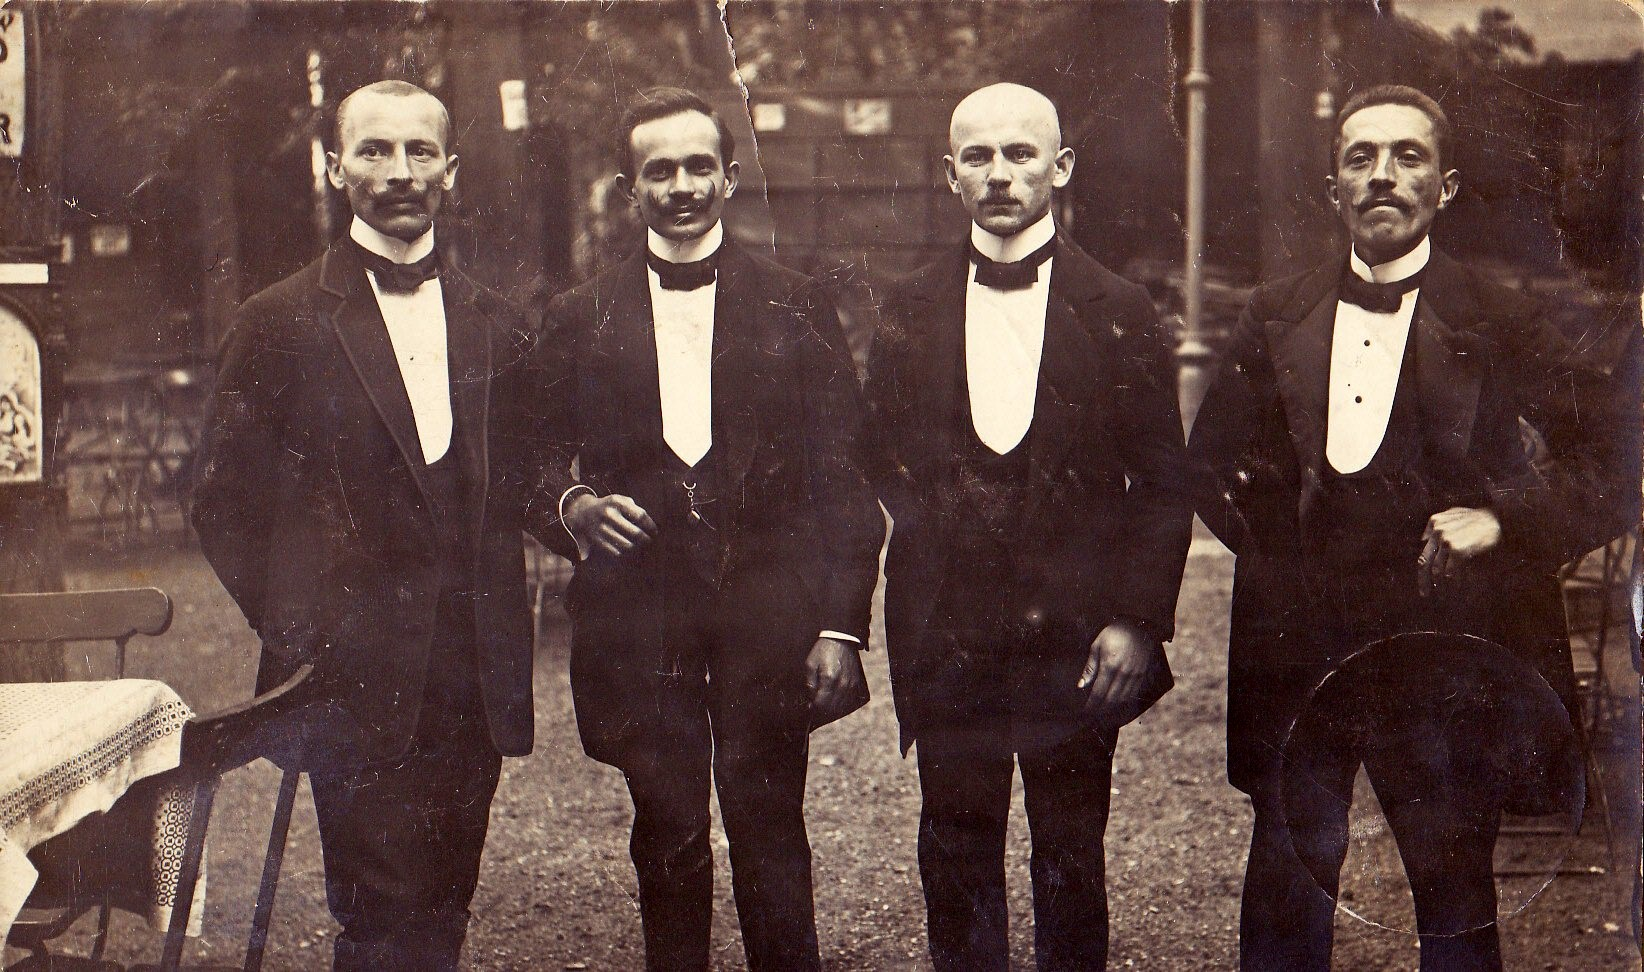 Pepe comes from a long line of waiters. Seen here from left to right - father Javier, Uncle Miguel, Uncle Victor and Grandfather Jose. Javier settled in Arkansas, under the false illusion that it was advantageous to live halfway between the Pacific and Atlantic oceans.